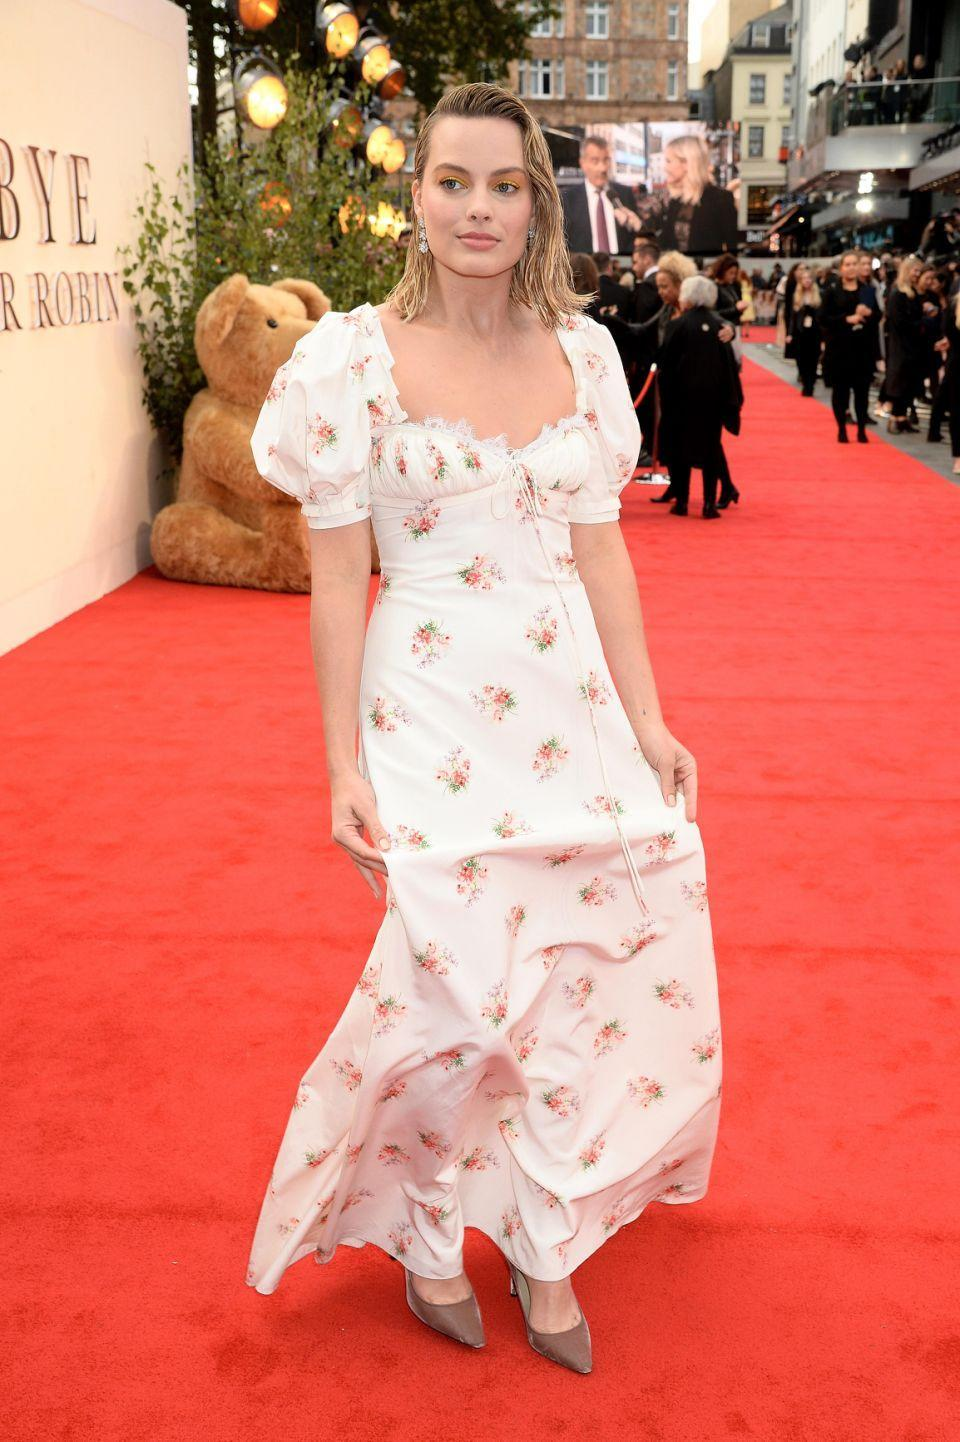 The dress is a departure from Margot Robbie's usual figure-hugging numbers. (Photo: Getty Images)